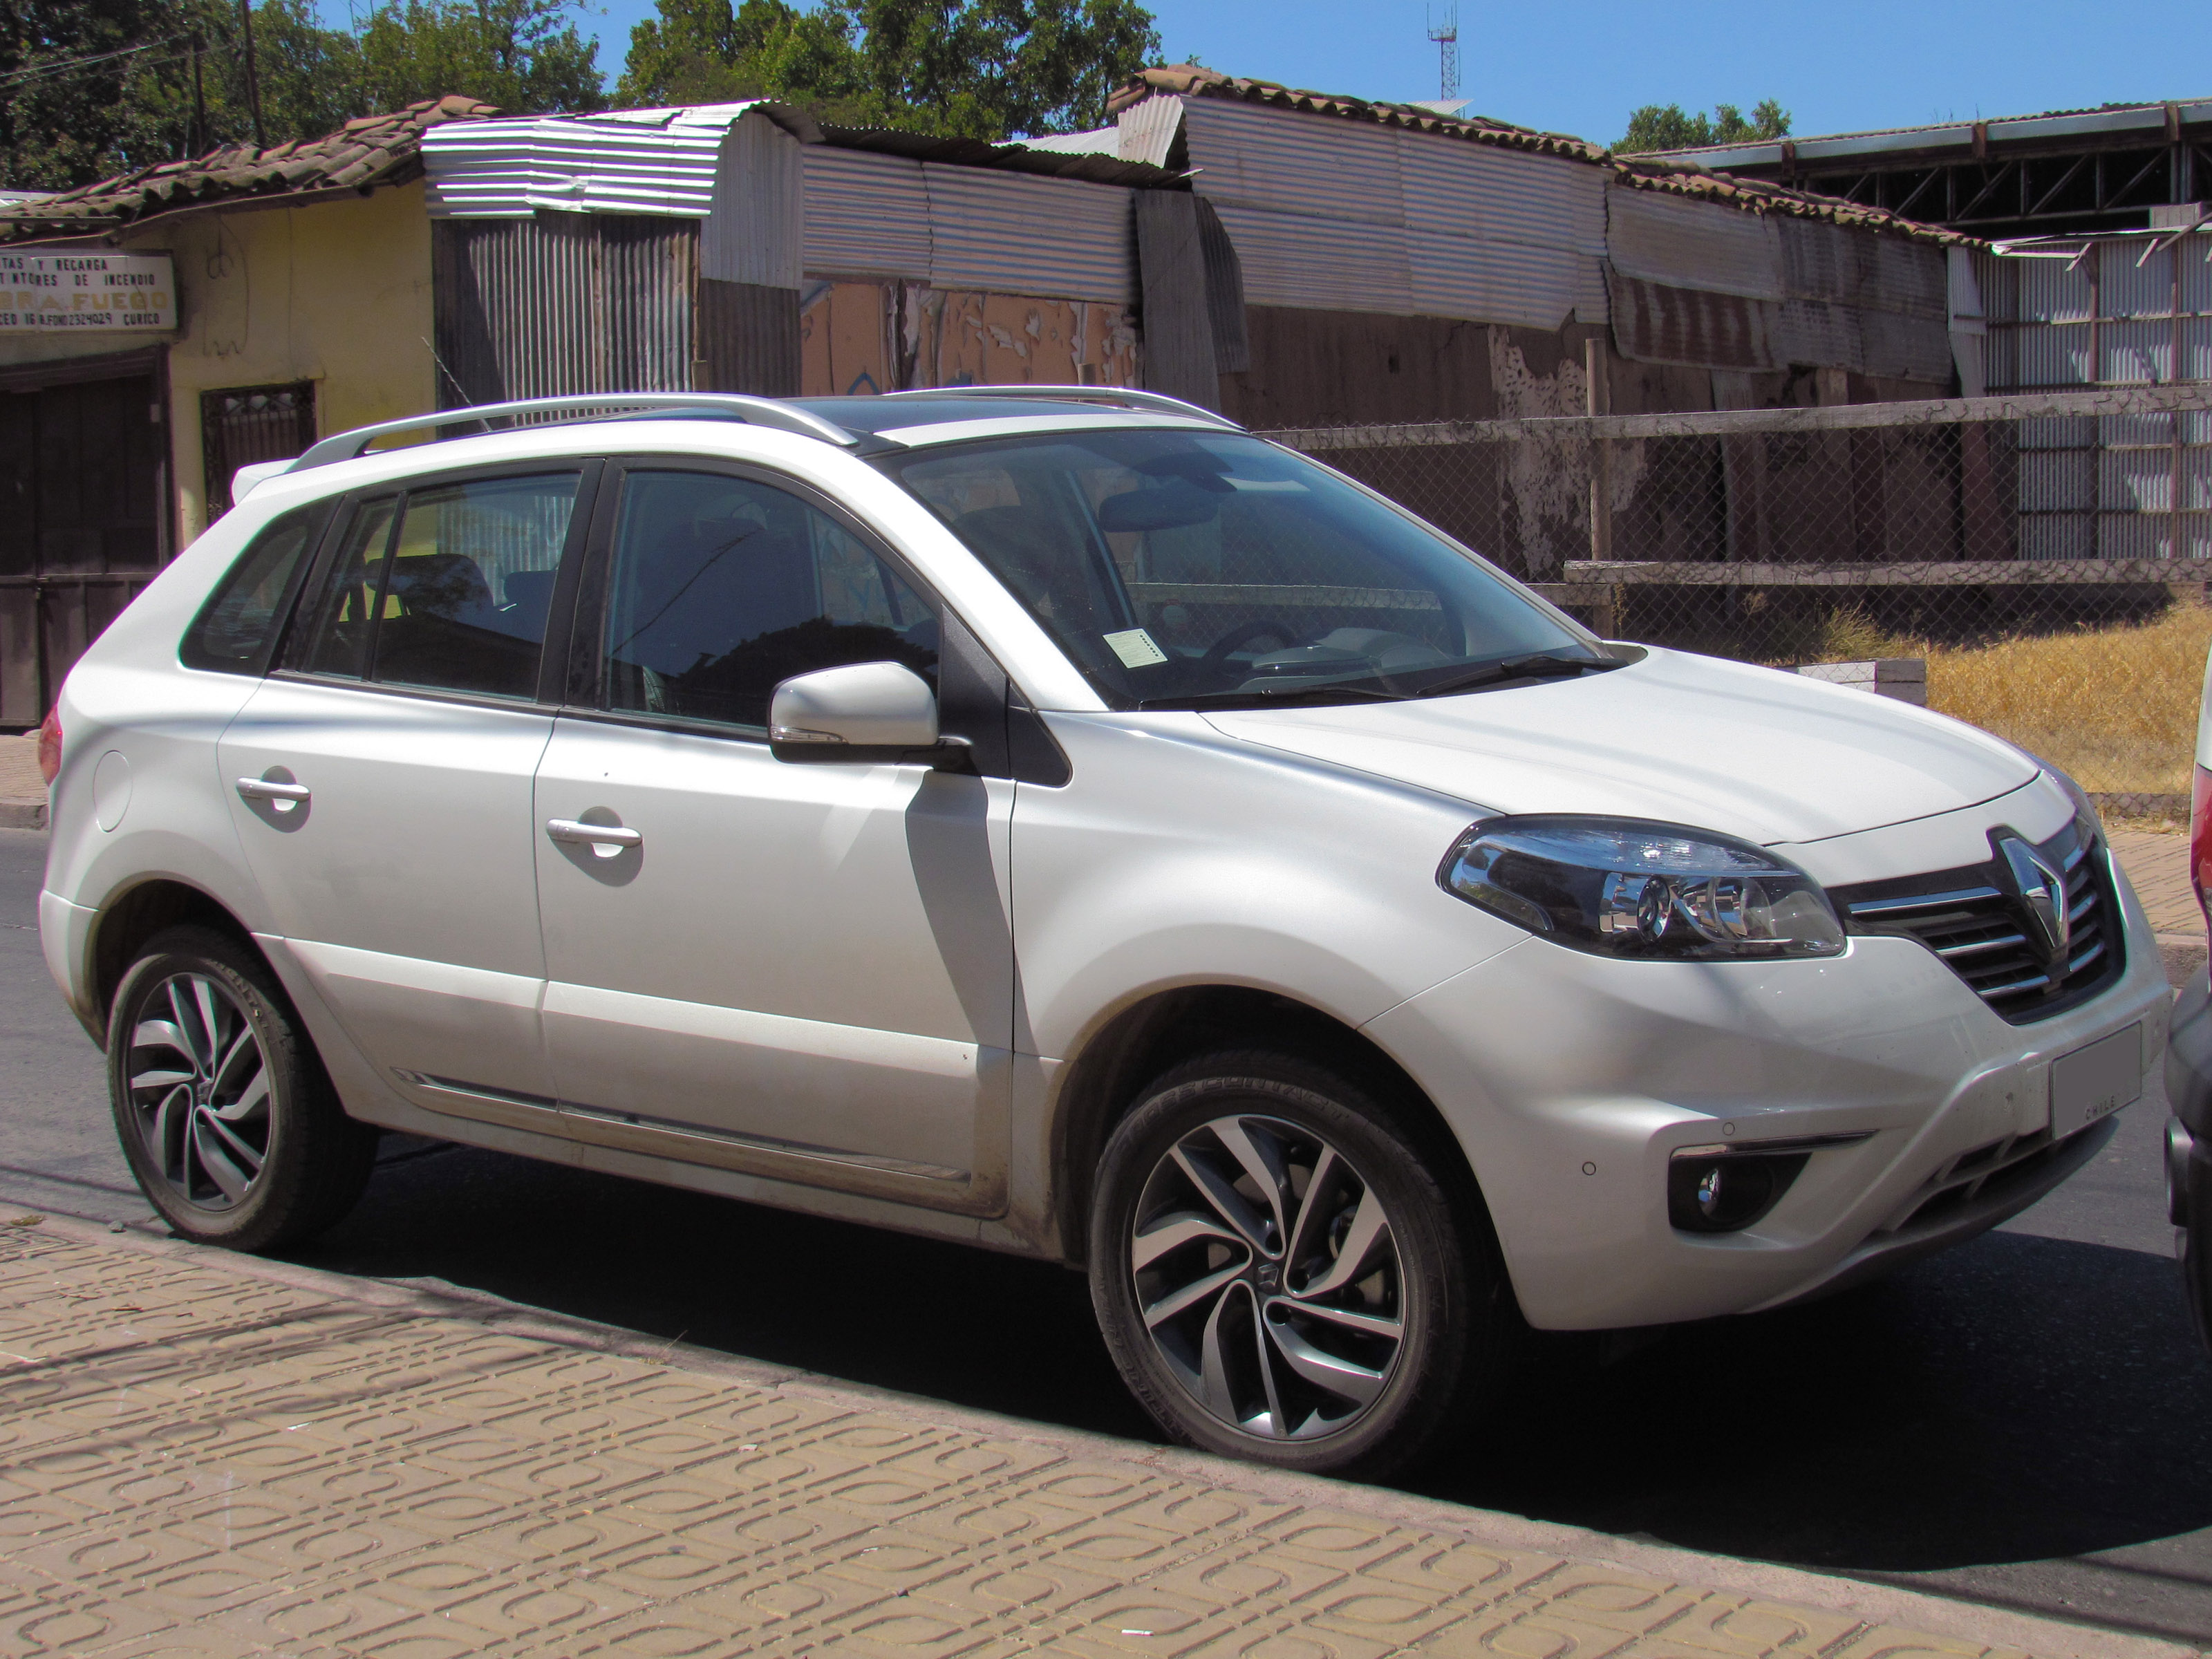 Renault Koleos 2.5 2014 photo - 2